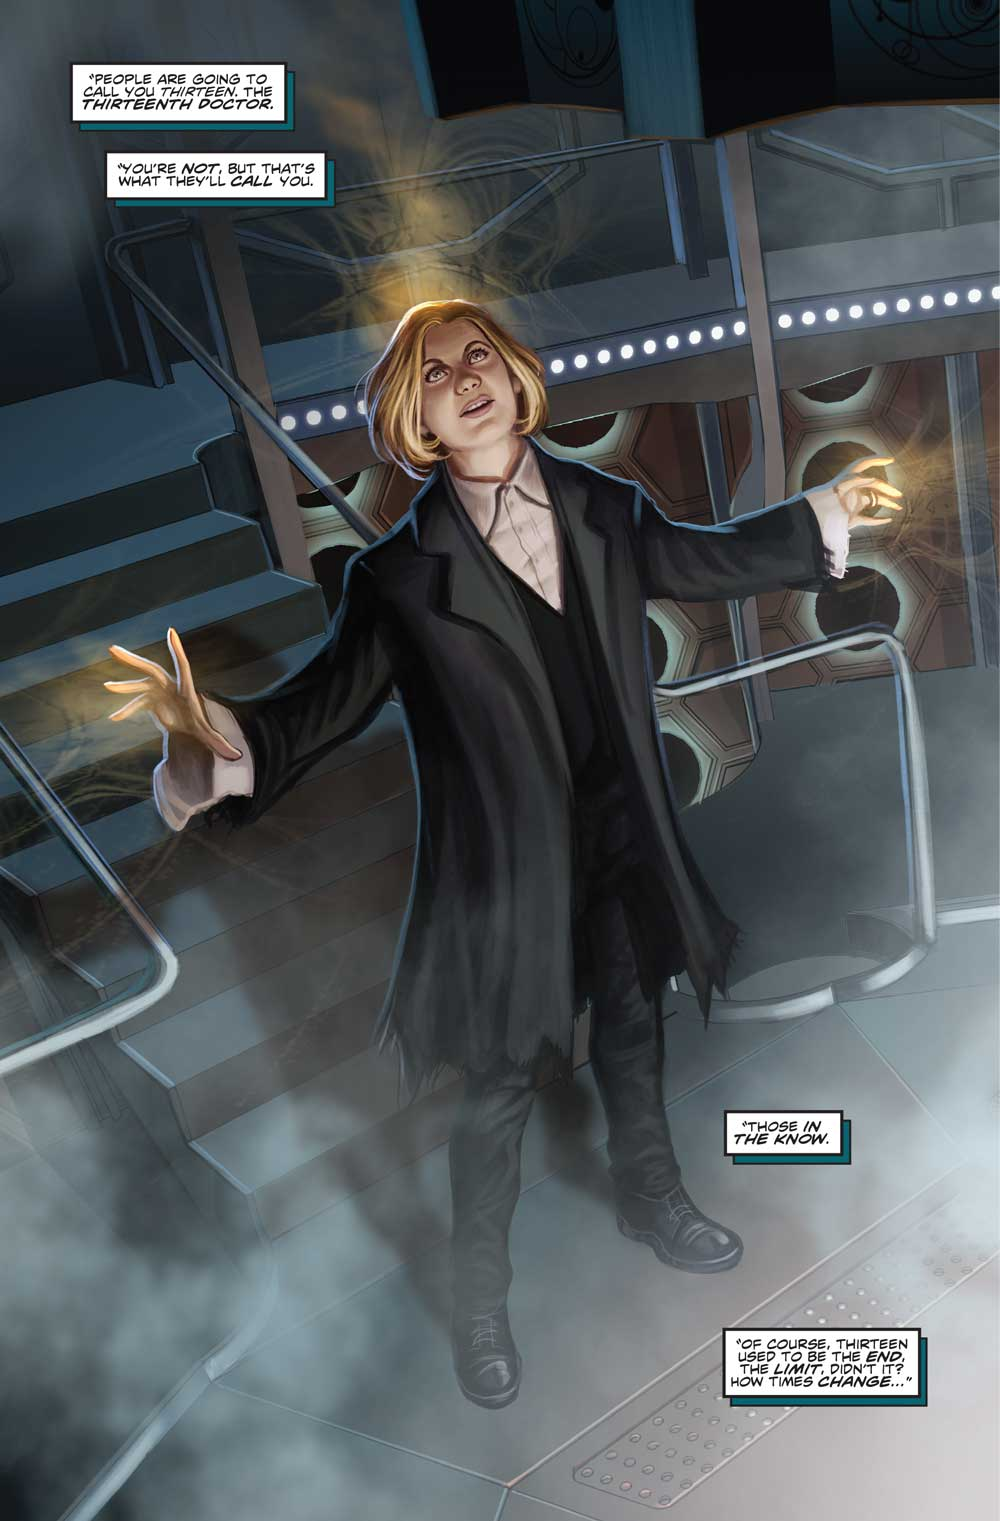 Image result for 13th doctor who #0 Ninth Doctor panels